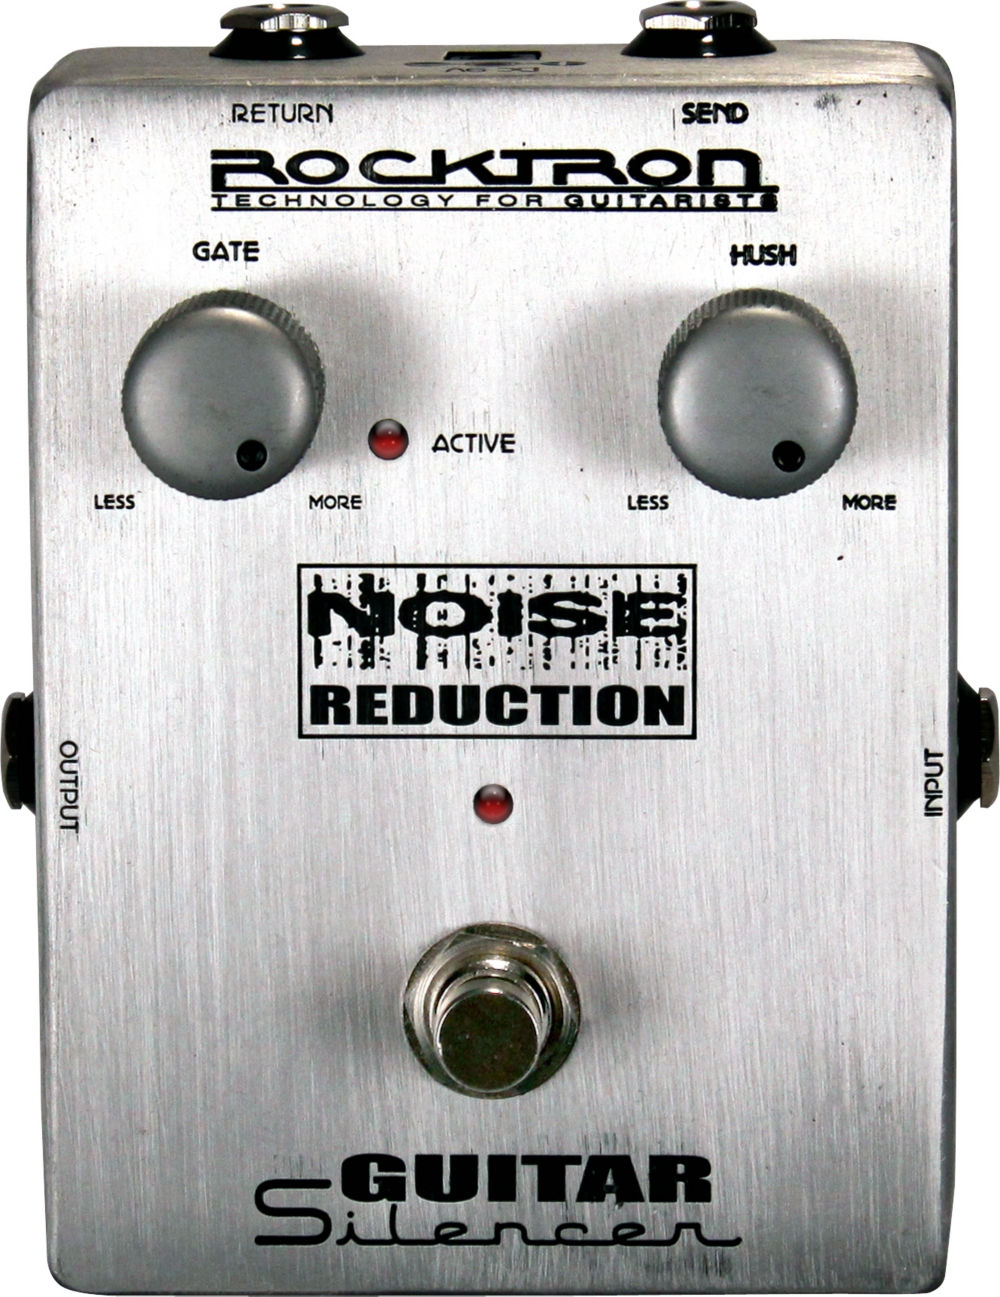 Rocktron Guitar Silencer Noise Reduction Guitar Effects Pedal by Rocktron